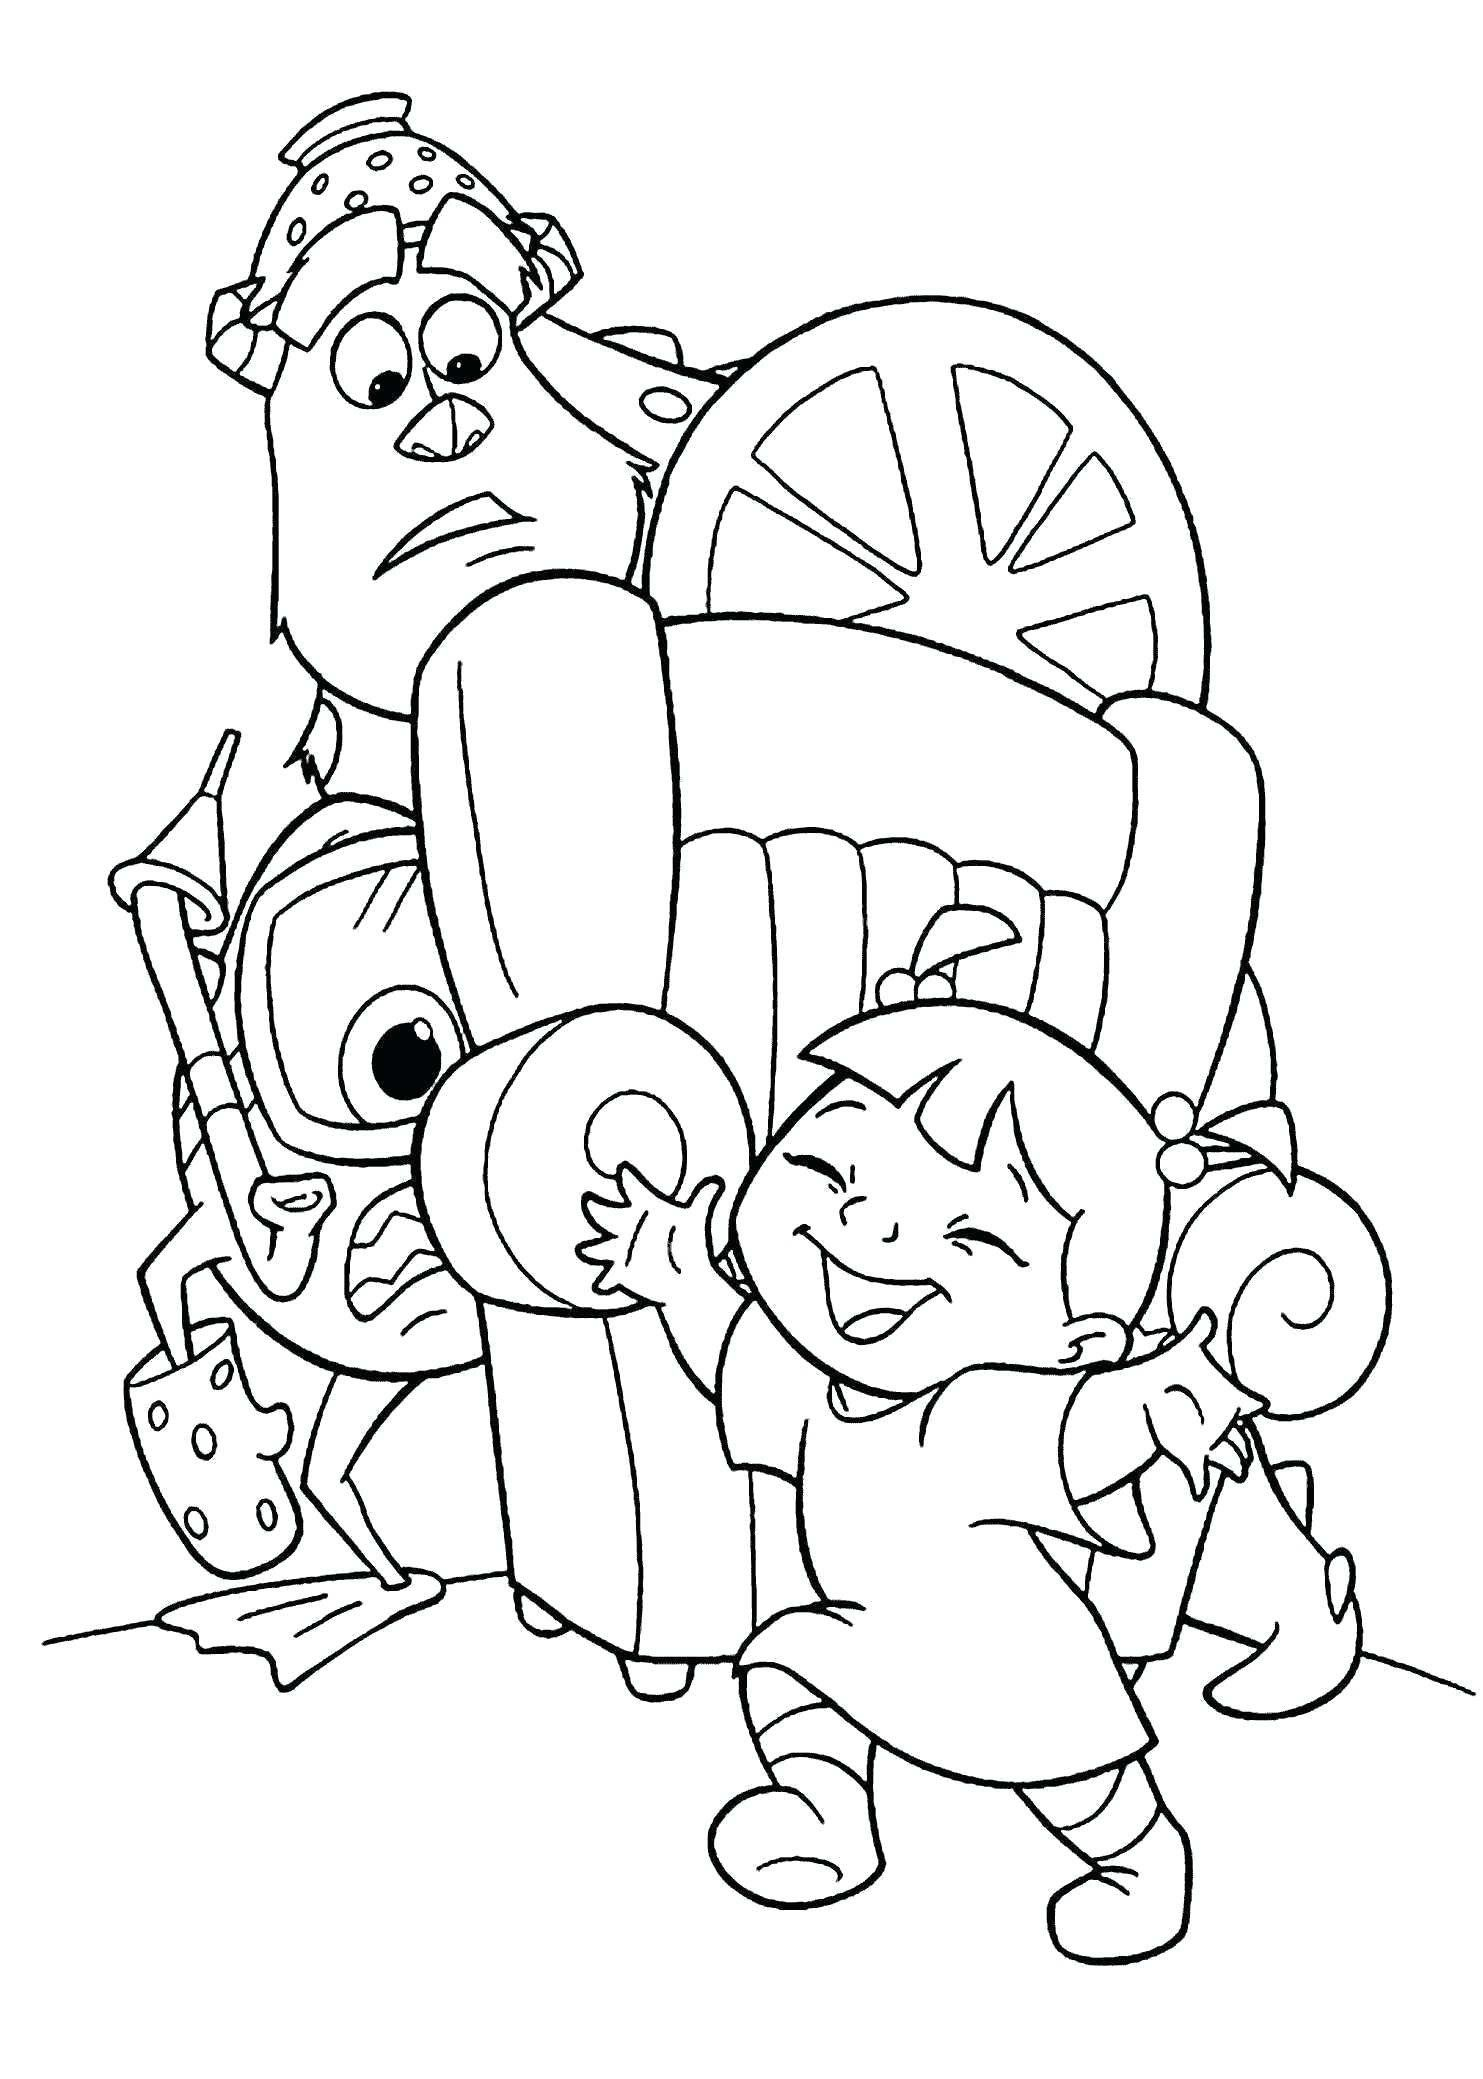 Pin On Top Coloring Page Ideas 2020